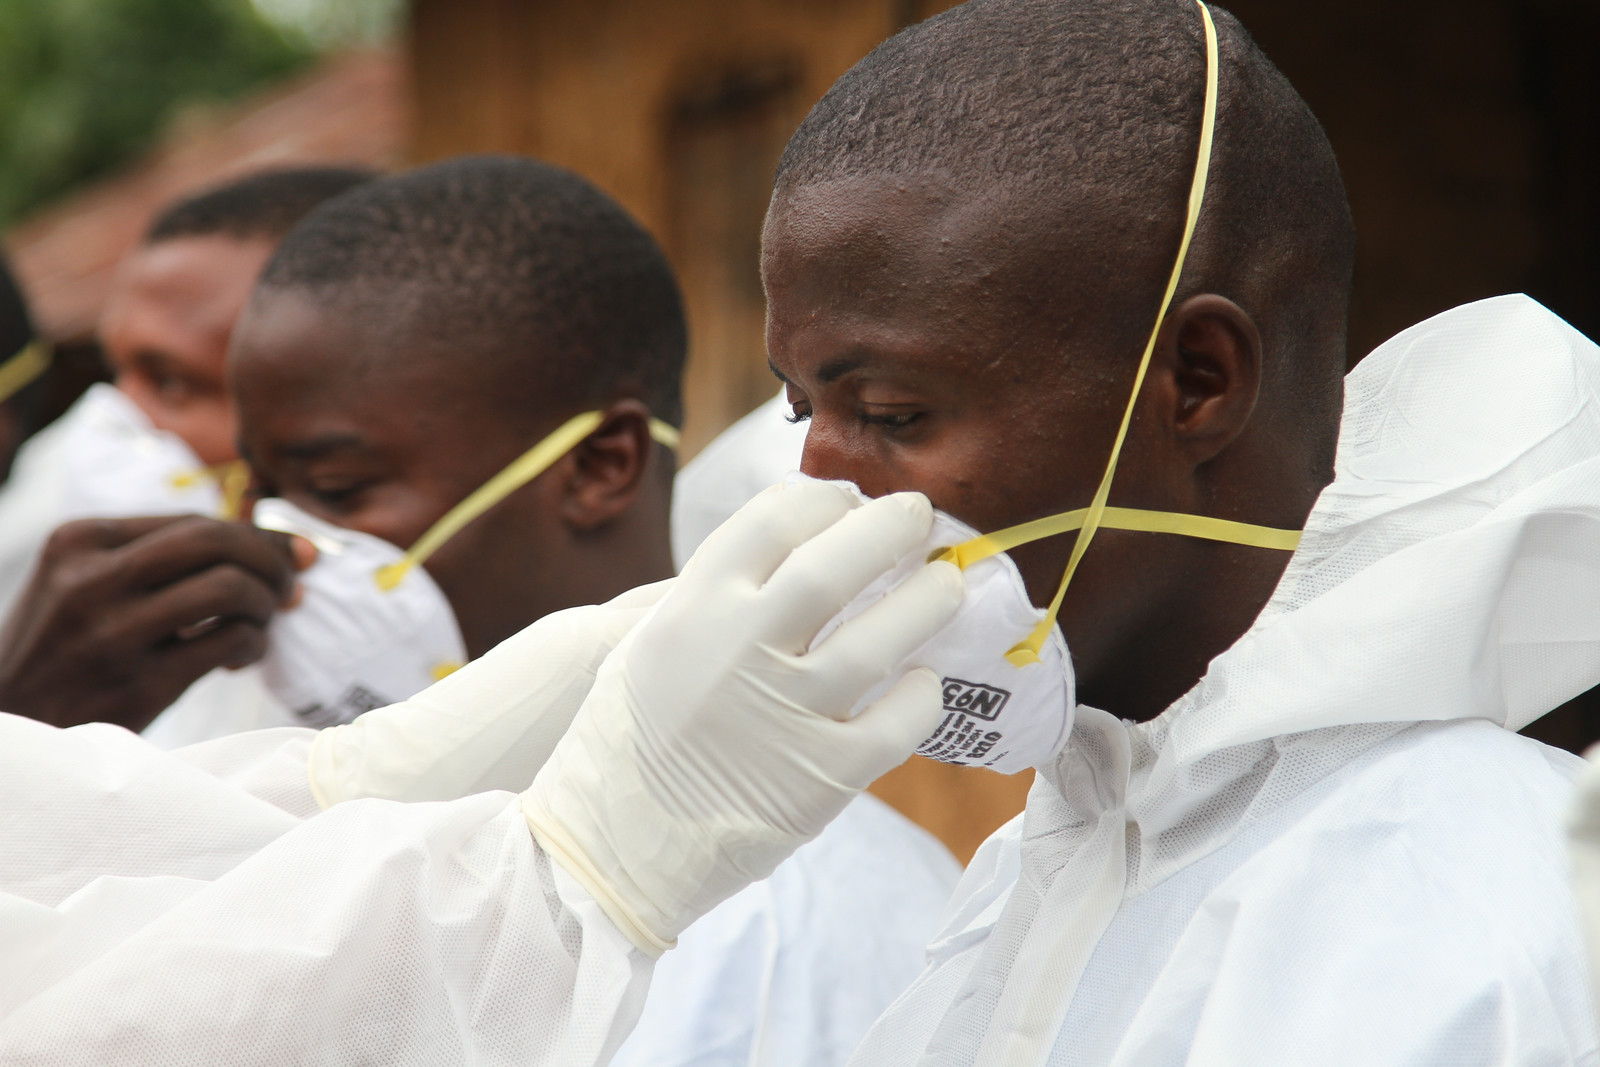 If individuals with natural immunity can be identified, they could end up serving a crucial role in reducing transmission of Ebola, particularly among healthcare workers, as they could work in otherwise high-risk settings without becoming infected.